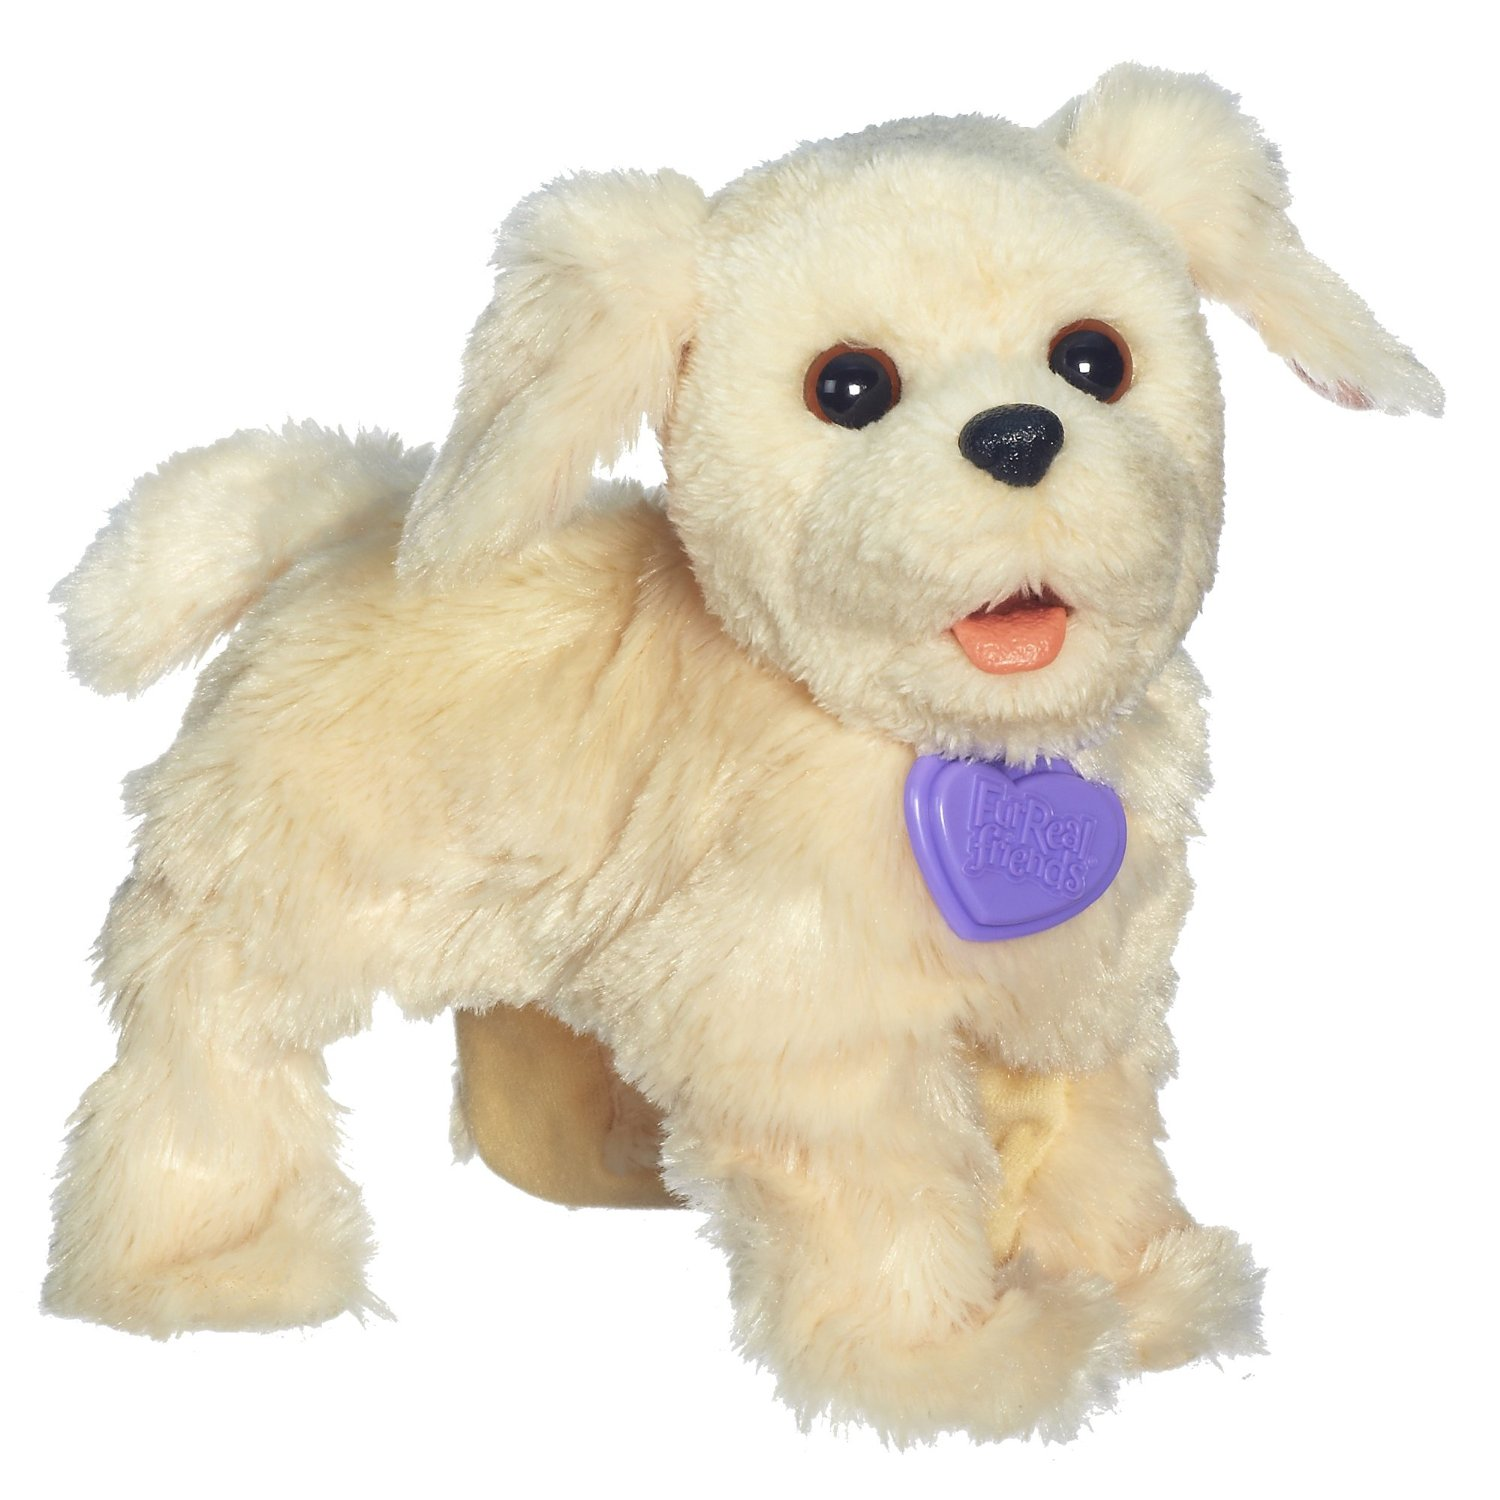 Cún Puppies Biscuit - FurReal Friends Walkin Puppies Biscuit Toy Plush